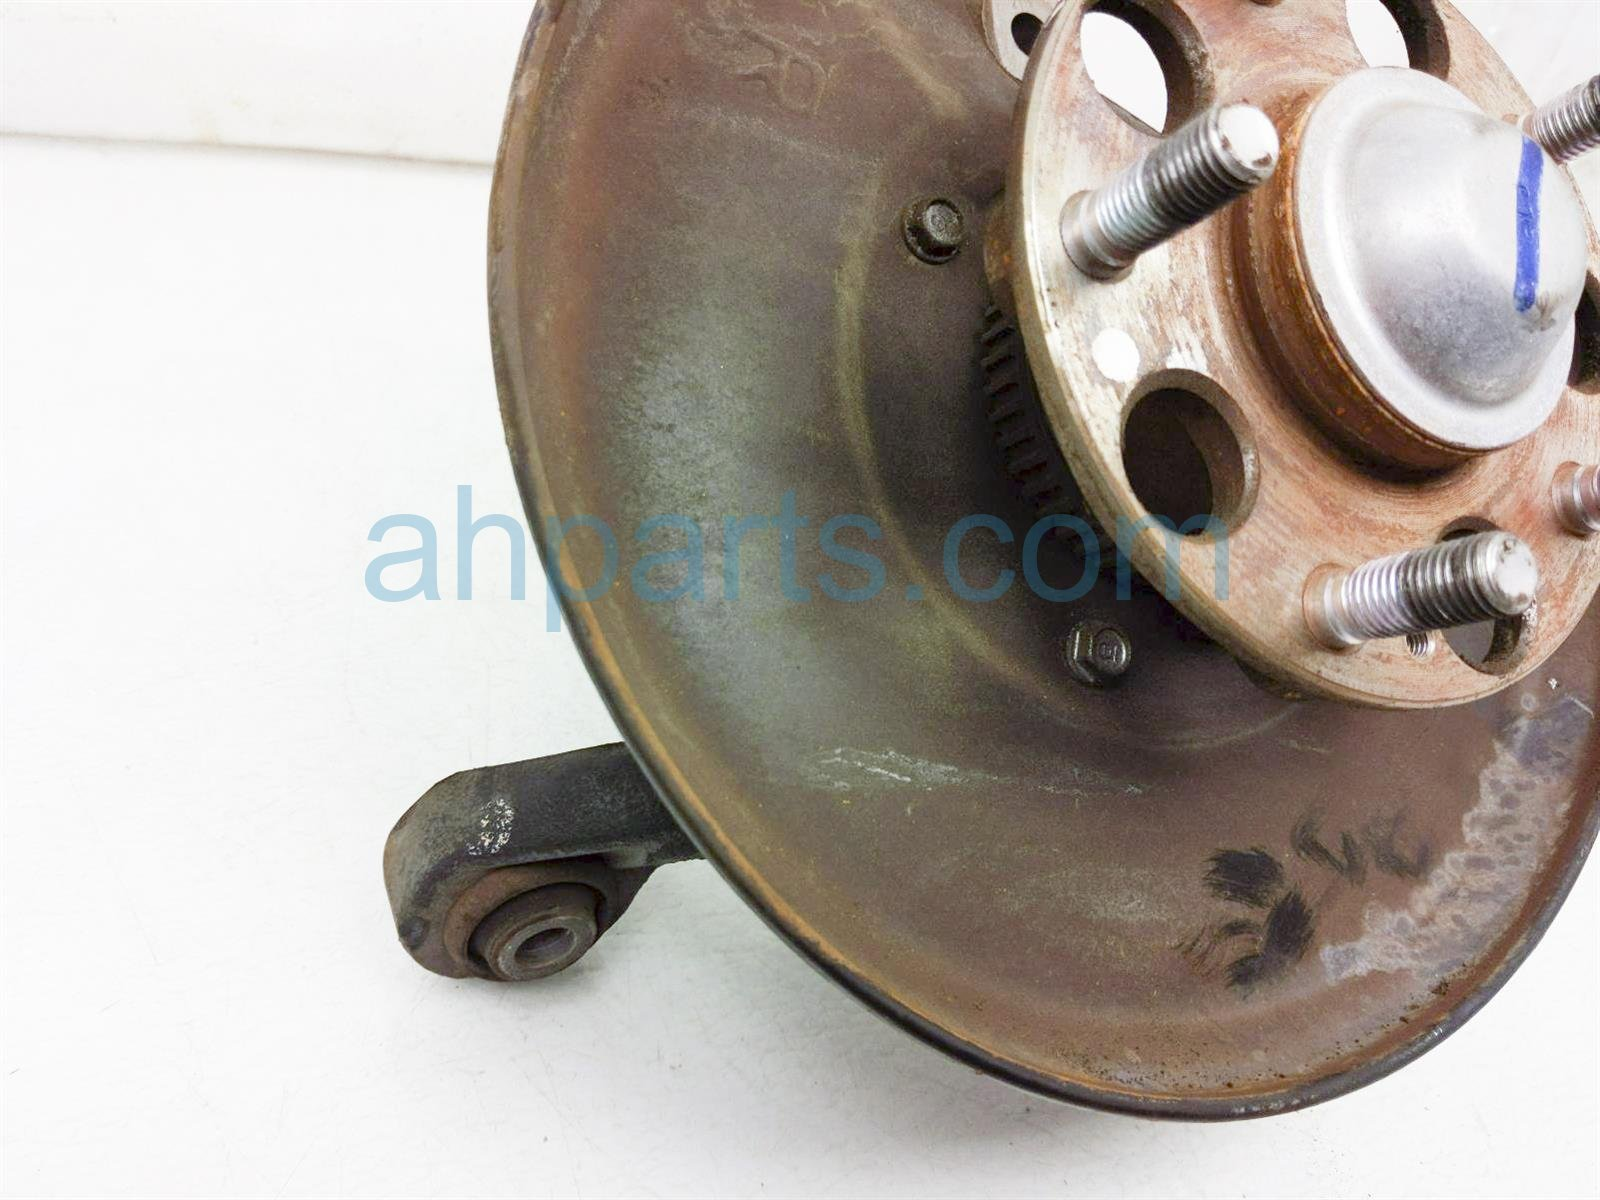 2007 Honda Accord Axle Stub Rear Passenger Spindle Knuckle Hub 52210 SDA A50 Replacement